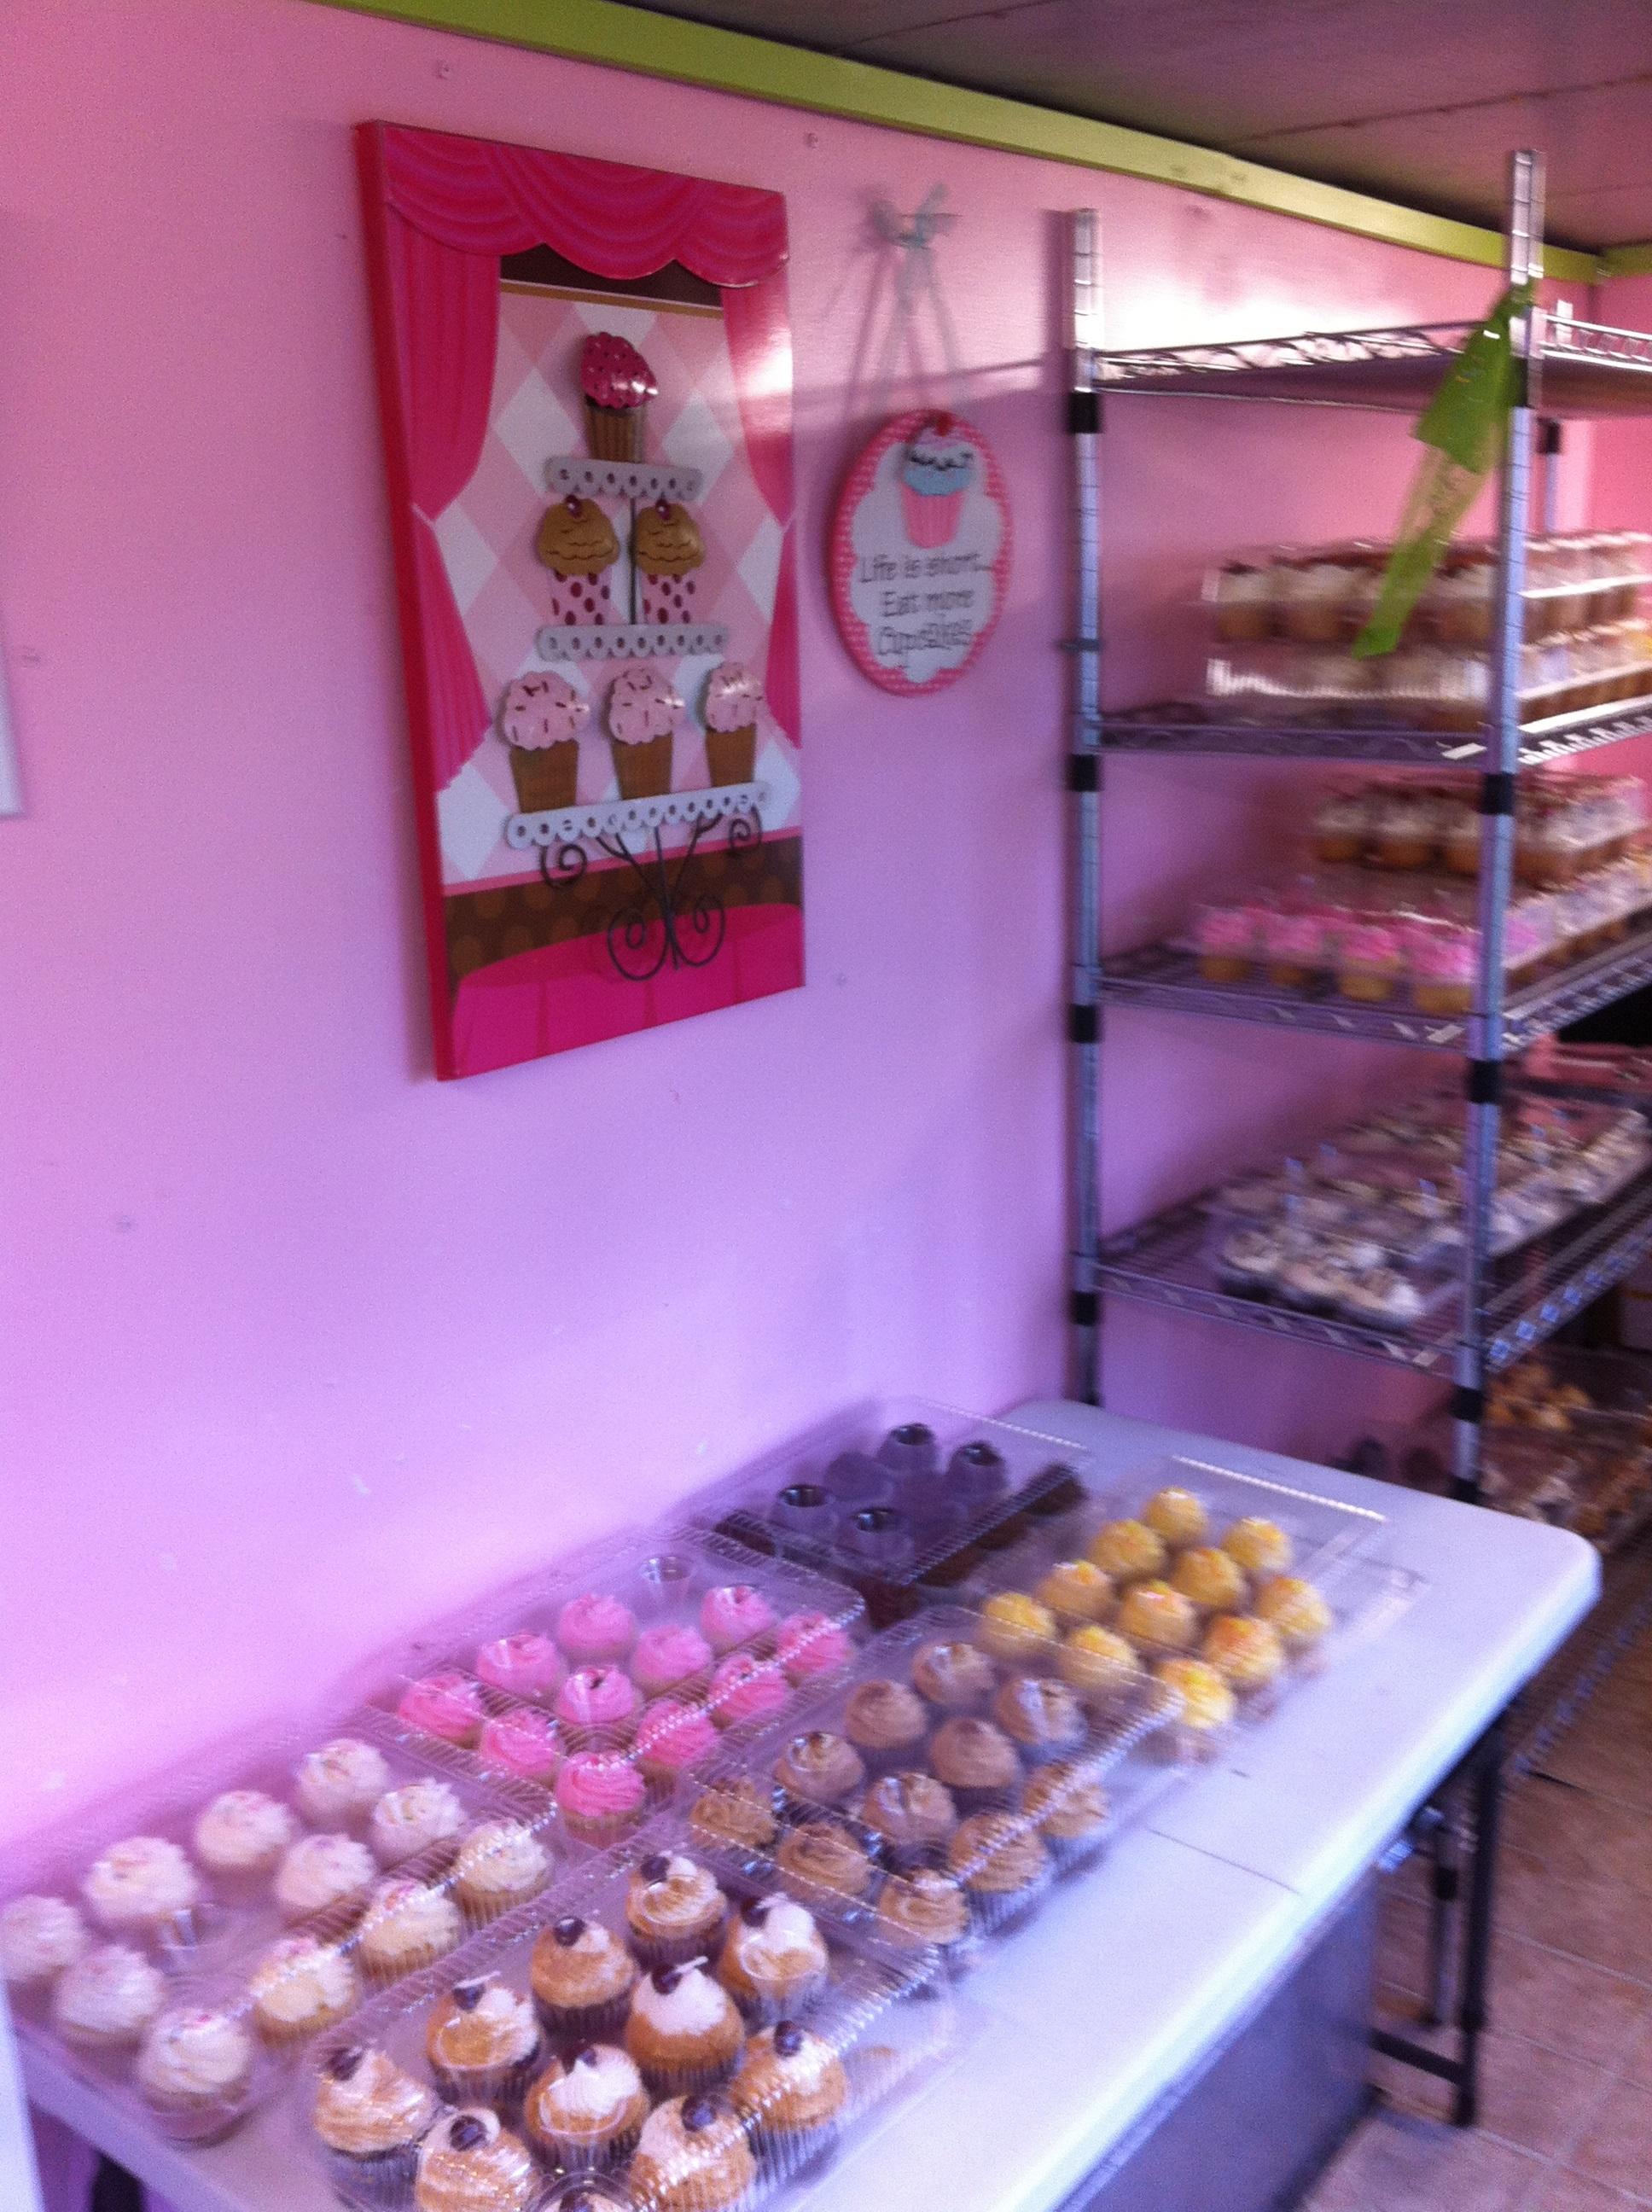 Used Truck For Sale >> Unforgettable Cupcakes Food Truck For Sale - Tampa Bay Food Trucks